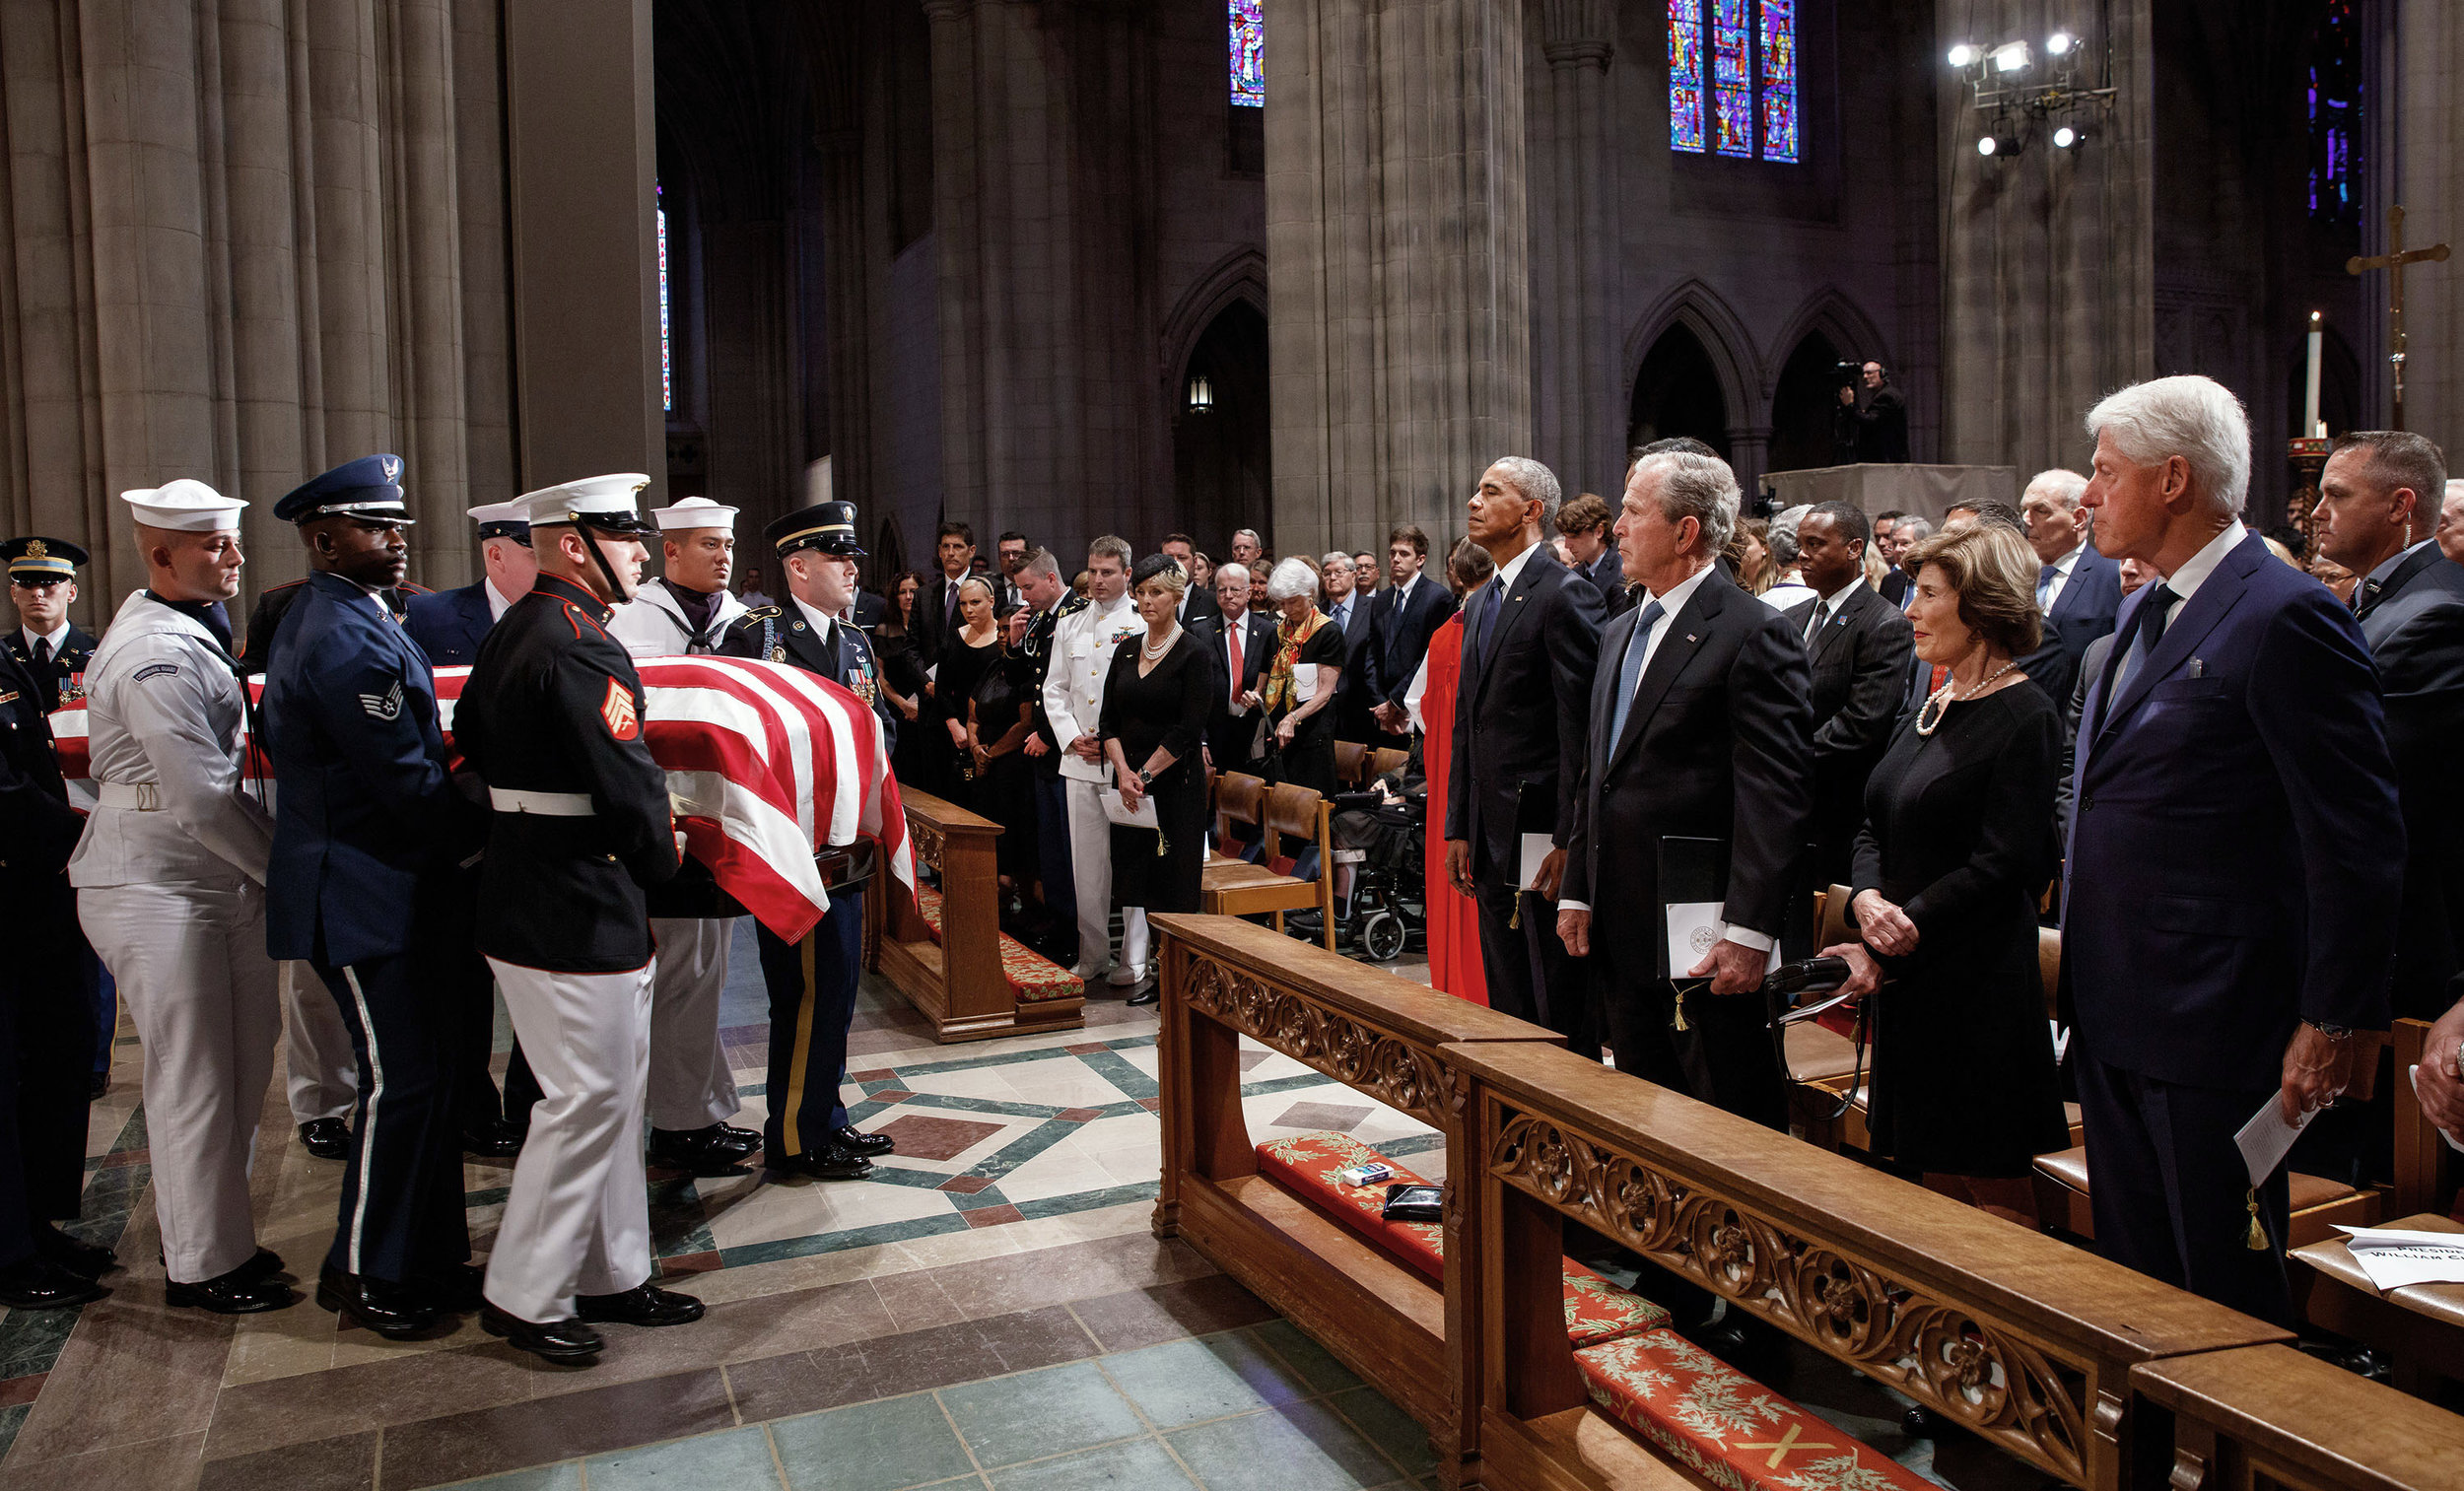 Former presidents Barack Obama, George W. Bush, and Bill Clinton watch the casket of Sen. John McCain  leave the National Cathedral in Washington, D.C. The McCain family is gathered on the other side of the aisle.  Obama and Bush, who both ran against McCain in presidential contests and won, were eulogists at his request. President Trump was not invited to attend.